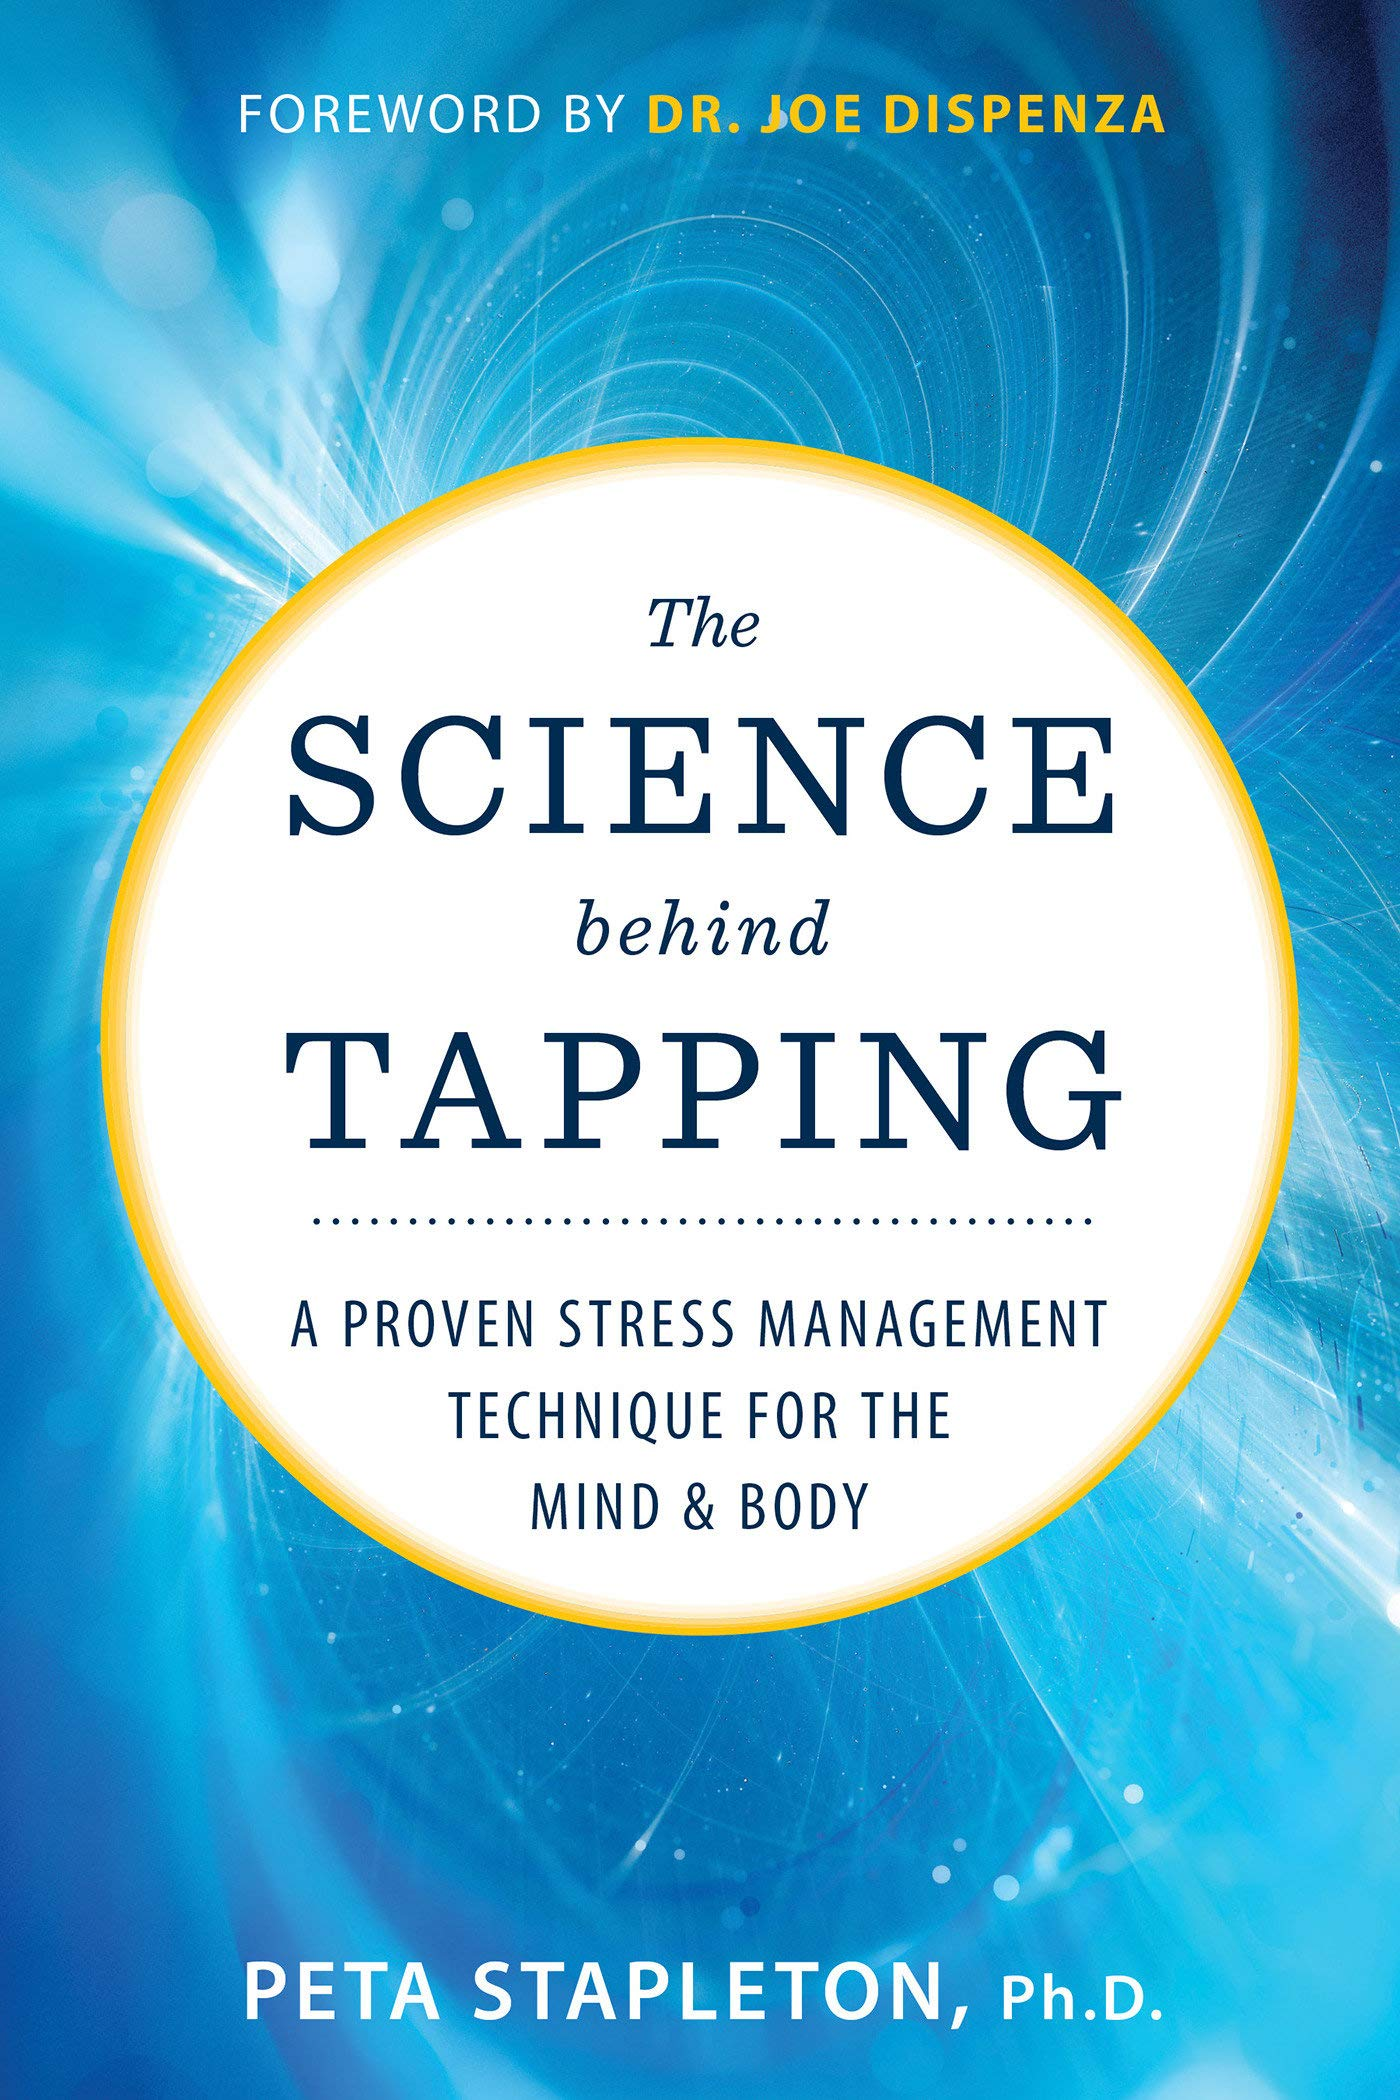 Science behind Tapping Management Technique product image